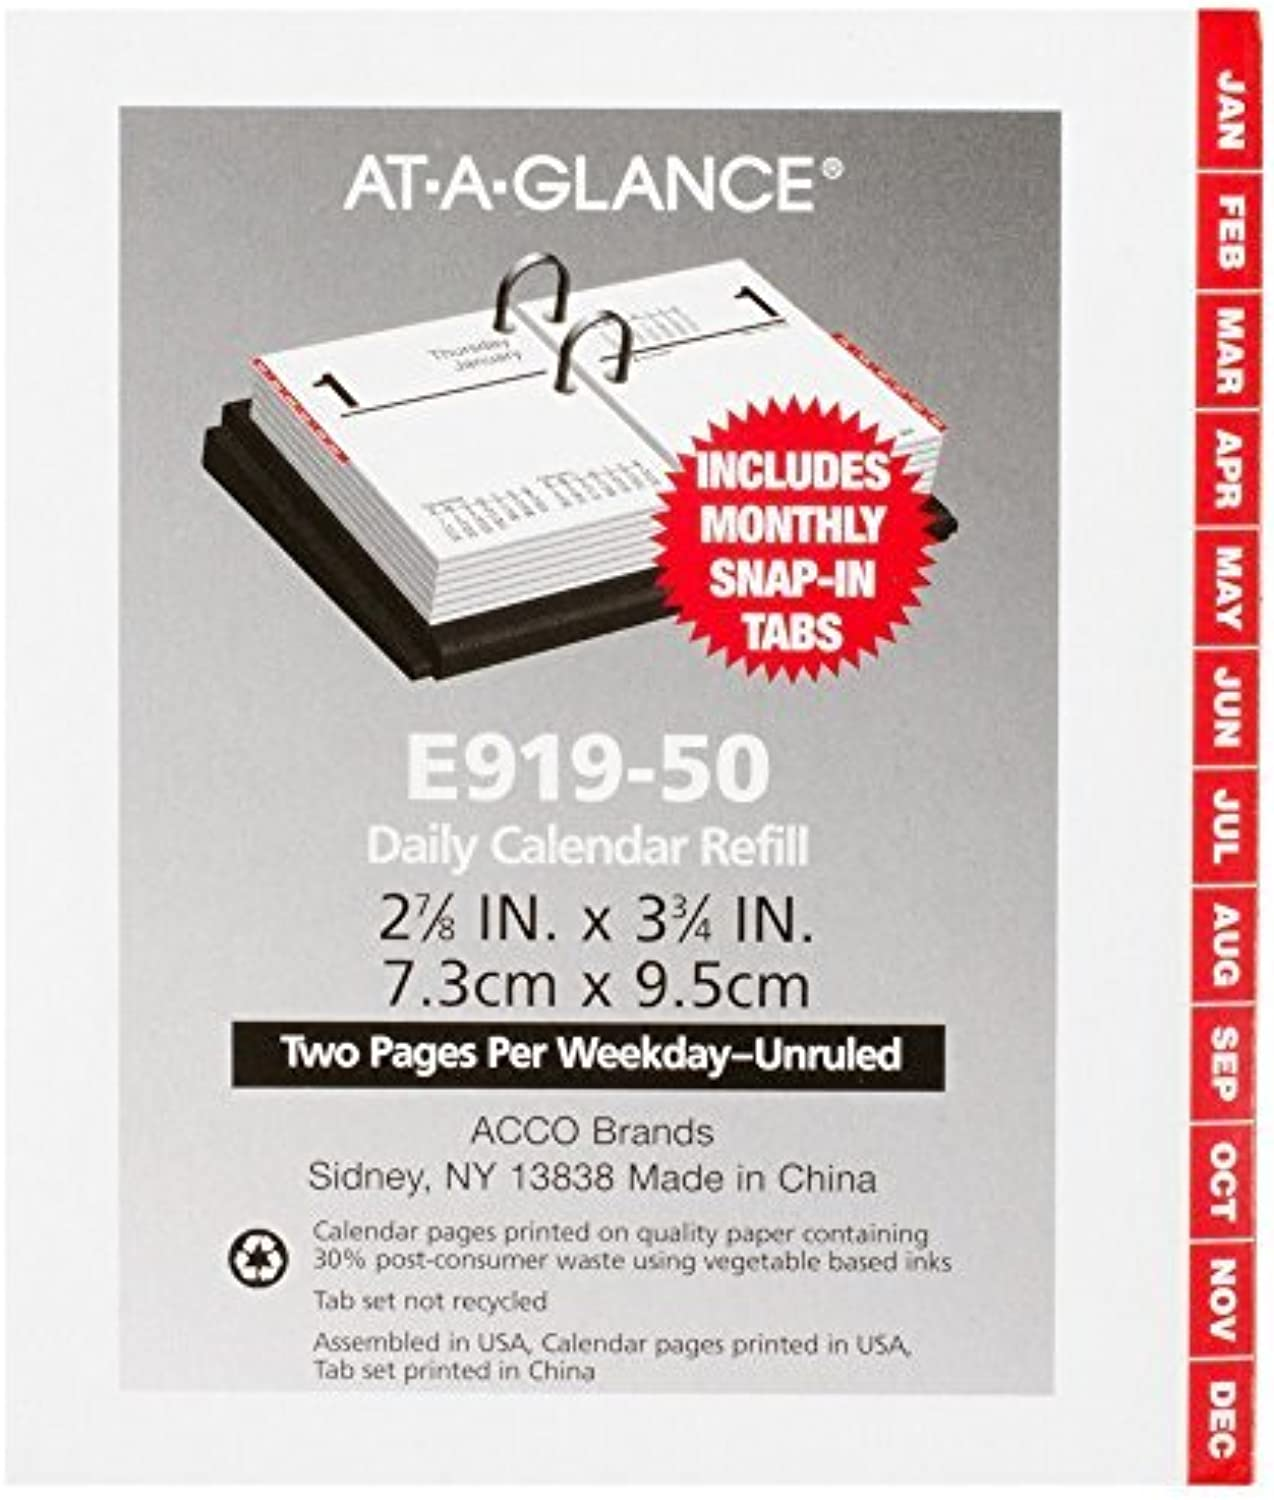 AT-A-GLANCE Daily Desk Calendar 2016 Refill, Refill, Refill, Compact, 12 Months, 3 x 3.75 Inch Page Größe (E91950) by At-A-Glance B0141MO68Y | Exquisite Handwerkskunst  295055